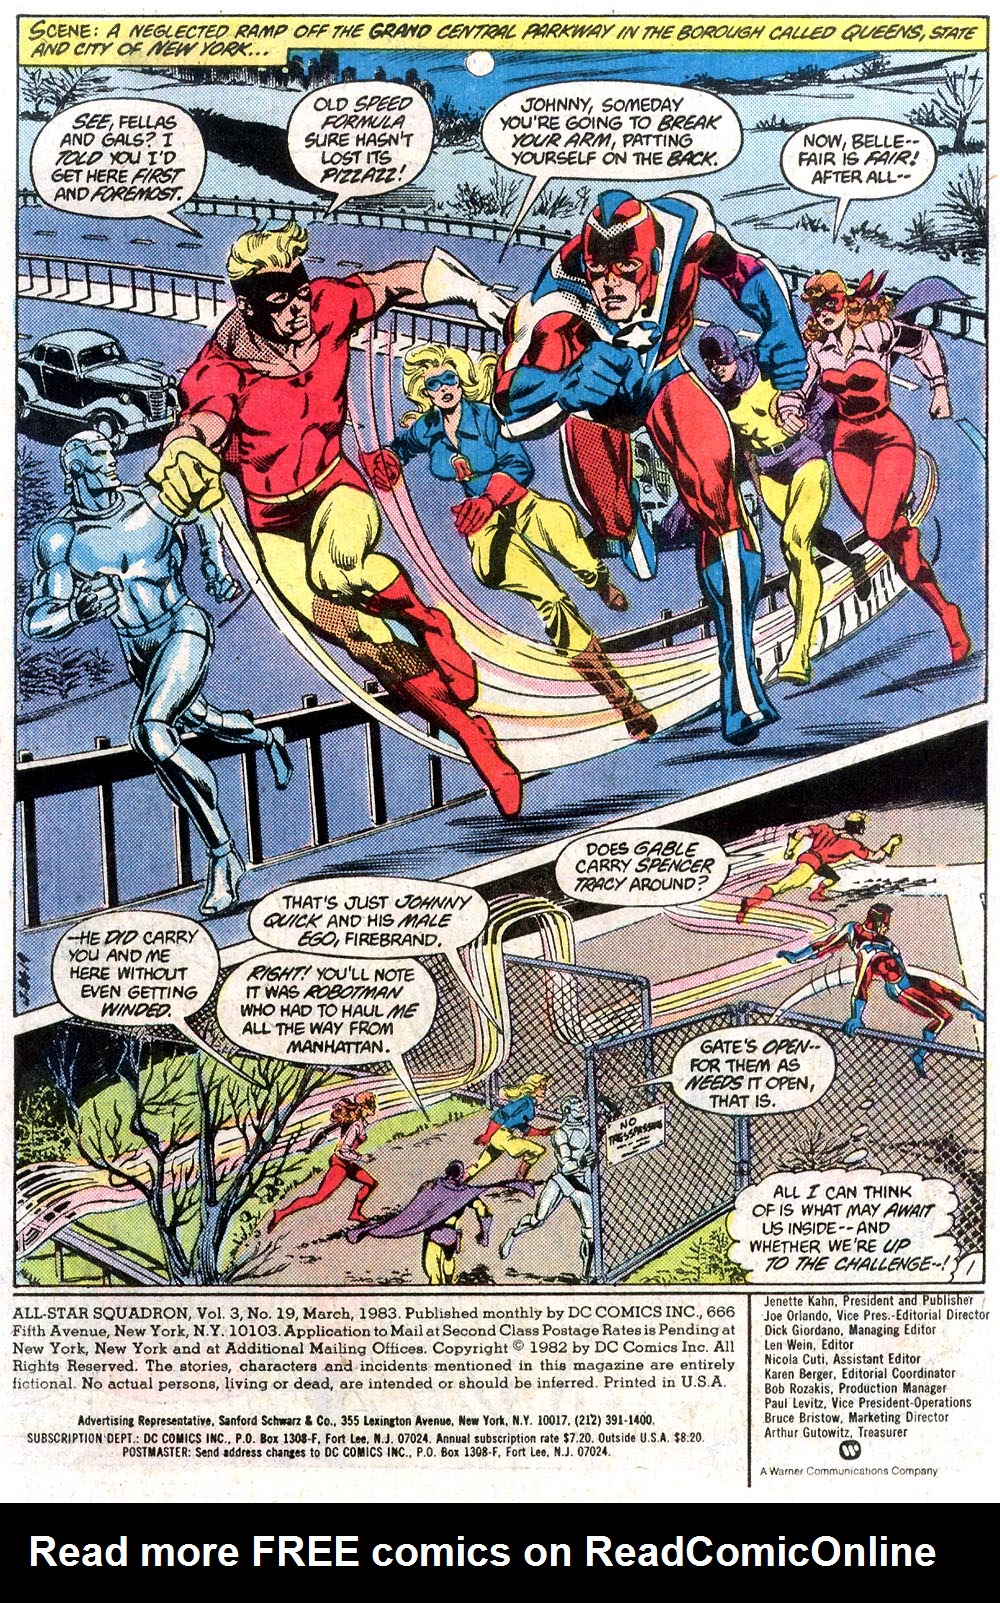 Read online All-Star Squadron comic -  Issue #19 - 2